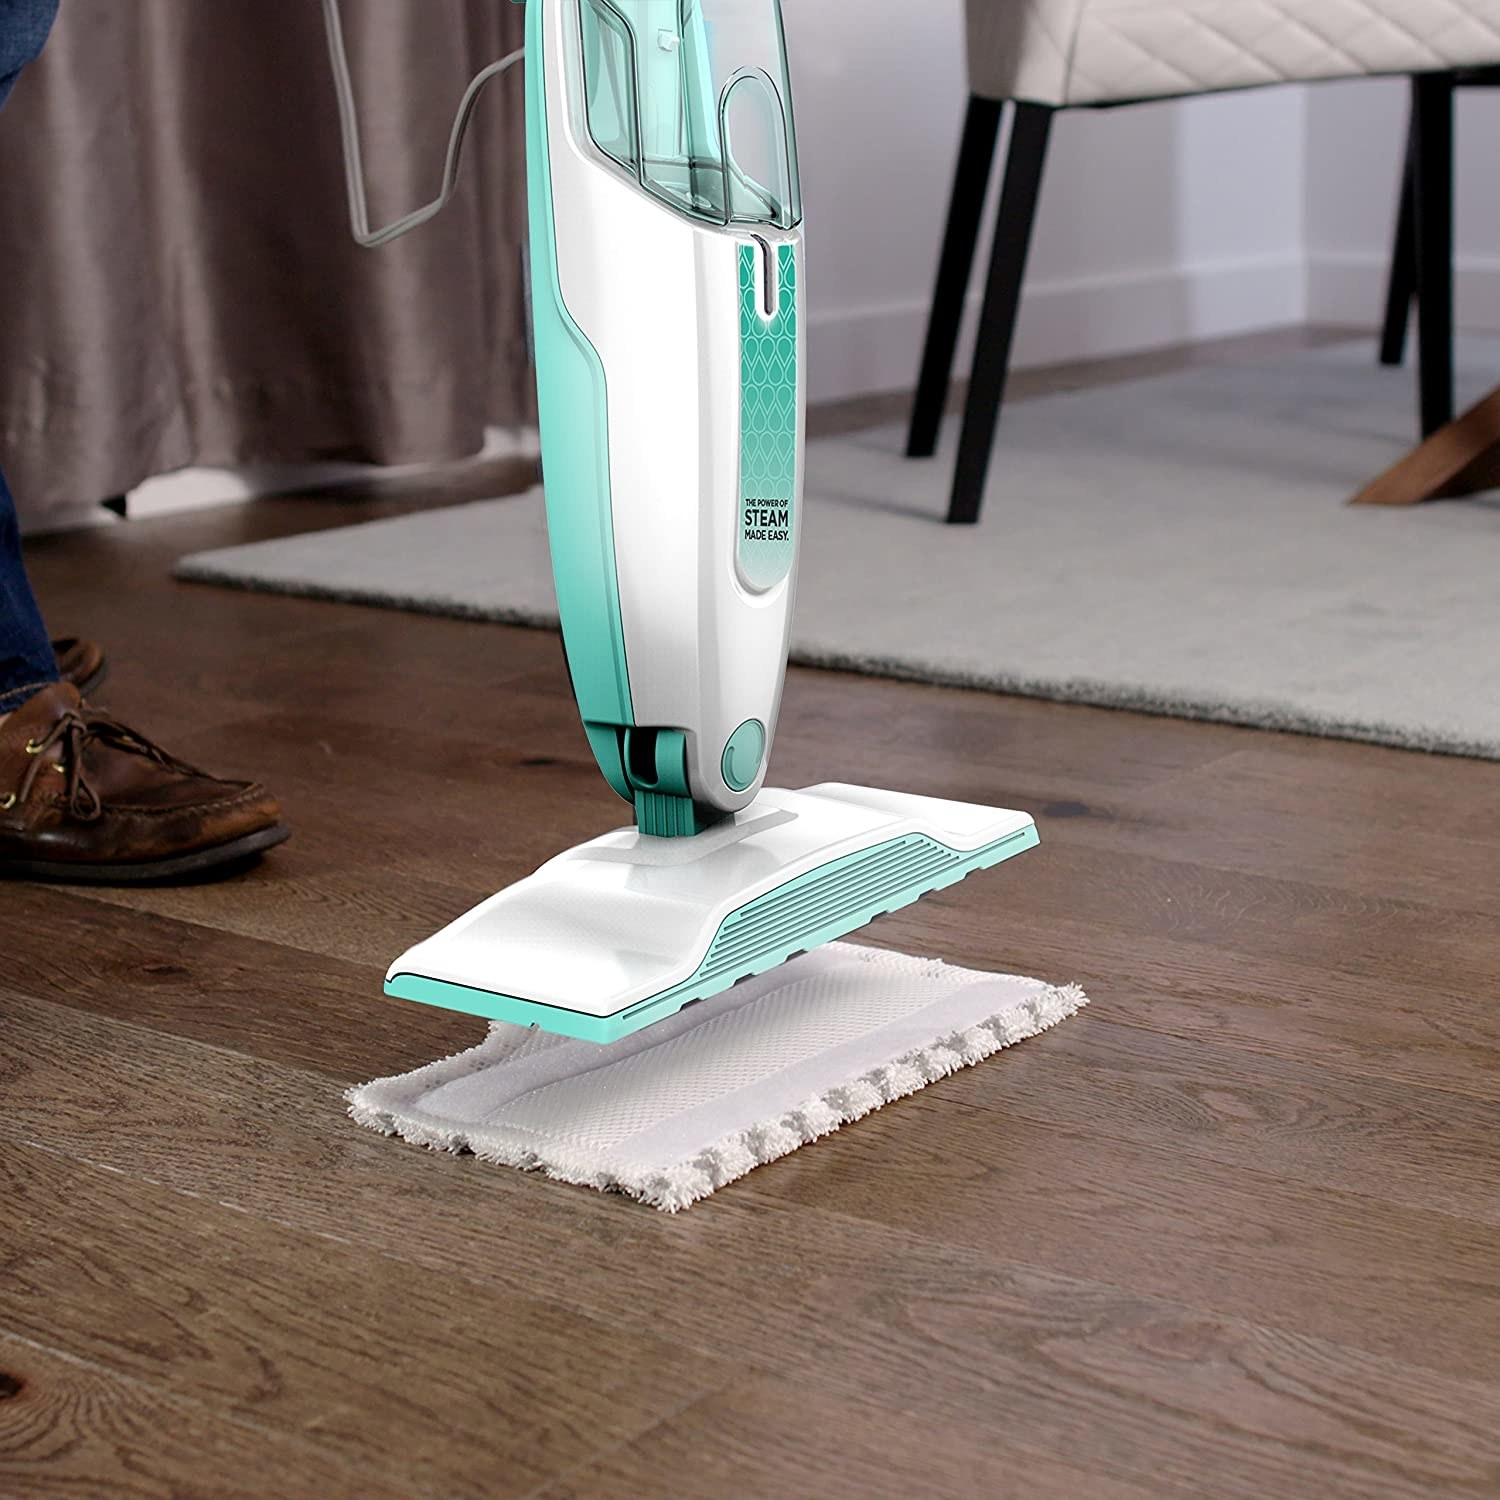 A steam mop above a steam mop pad on a hardwood floors